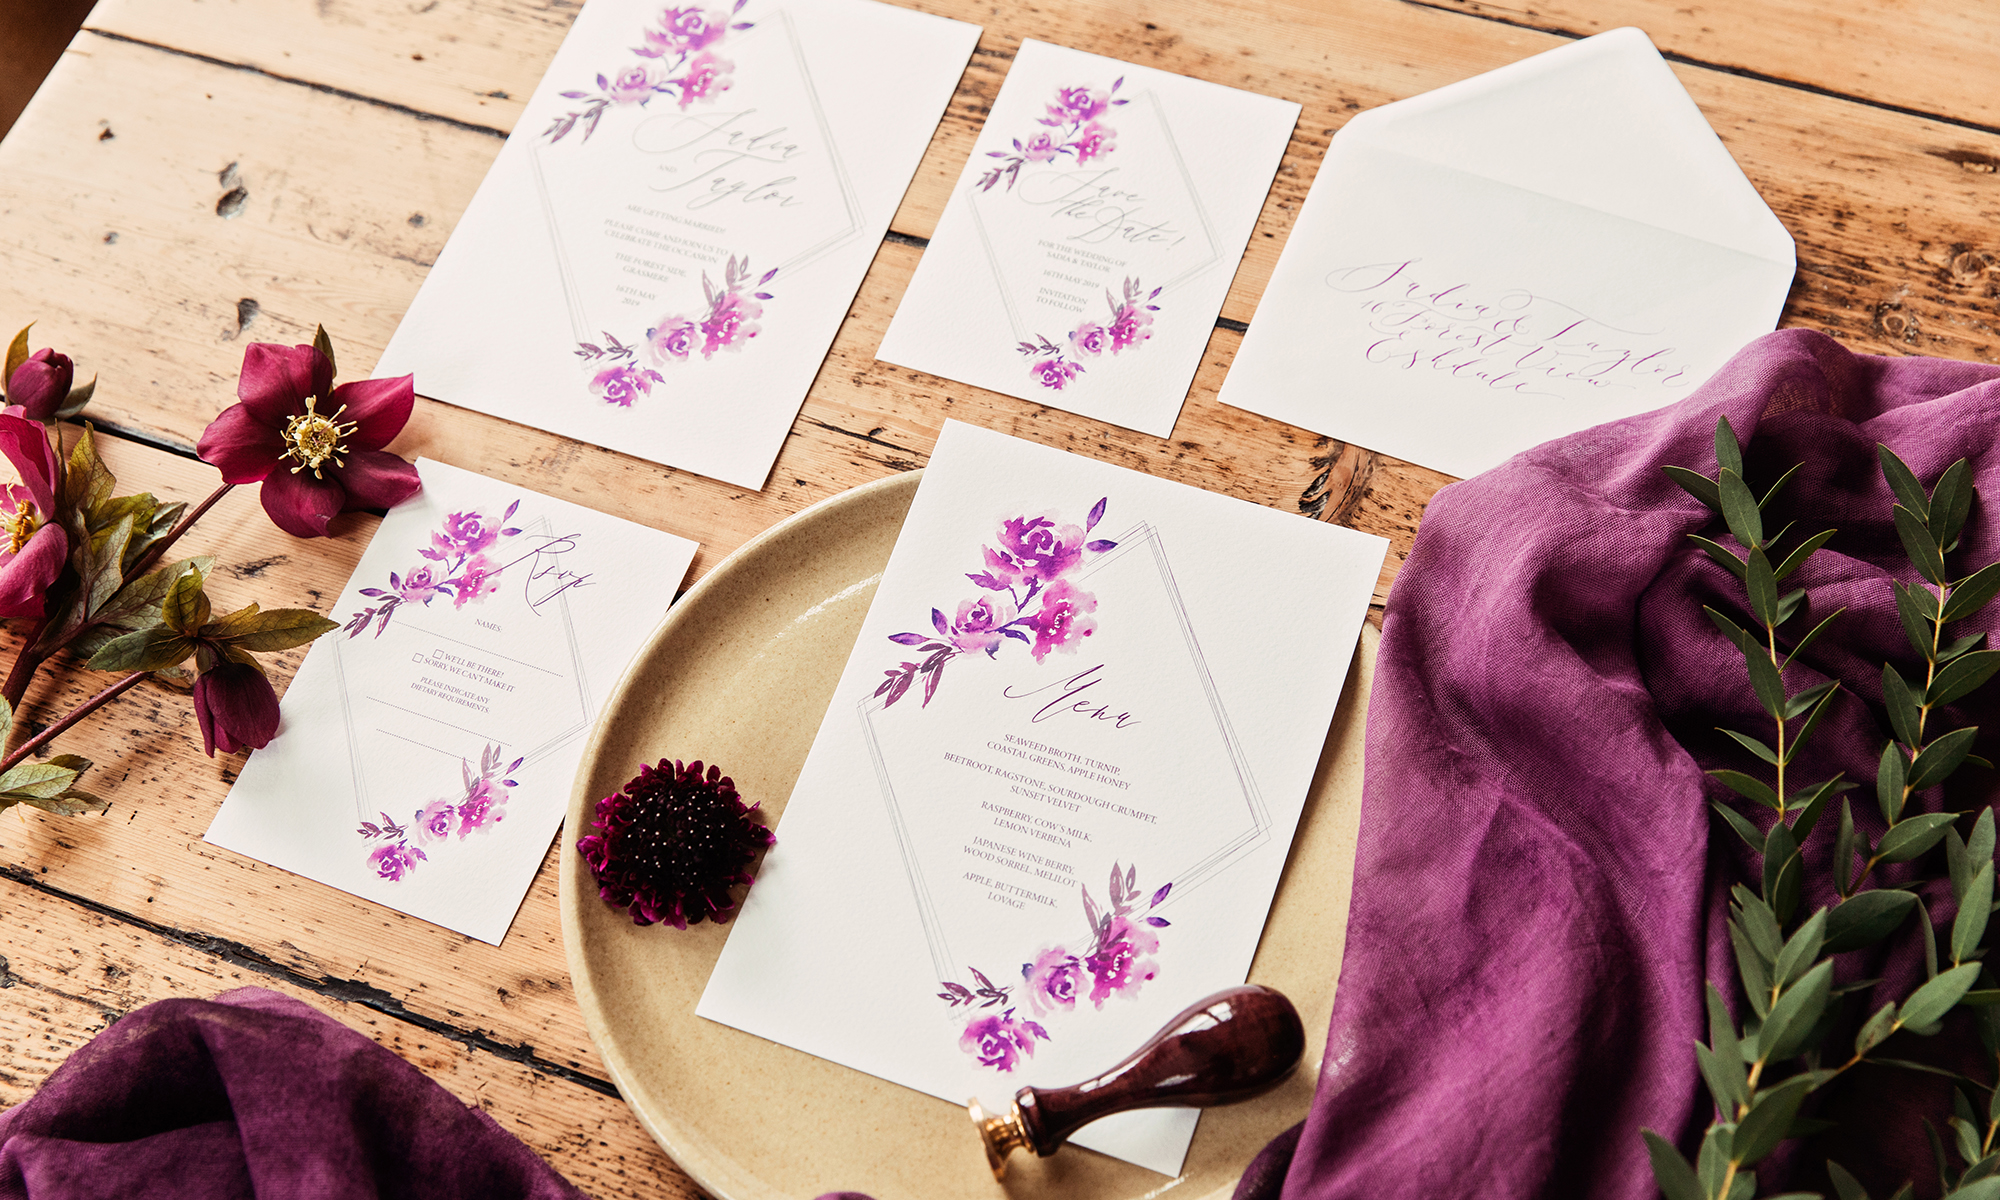 Buy Wedding Invitations: Easy Buy Online Wedding Invitations And Matching Items